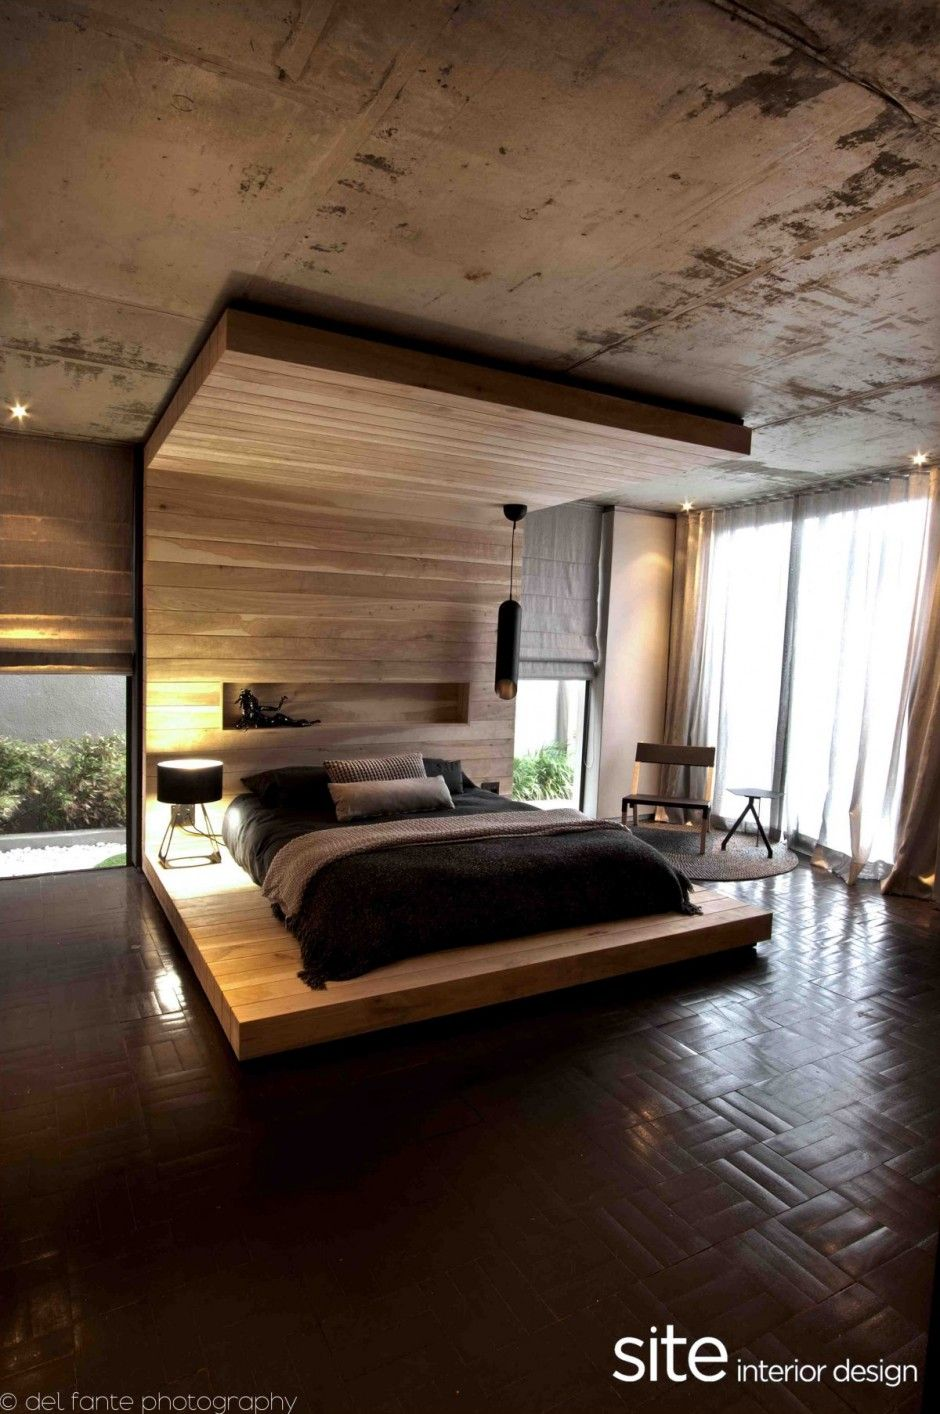 Home design schlafzimmer ideen wow love everything about this bedroom aupiais house by site